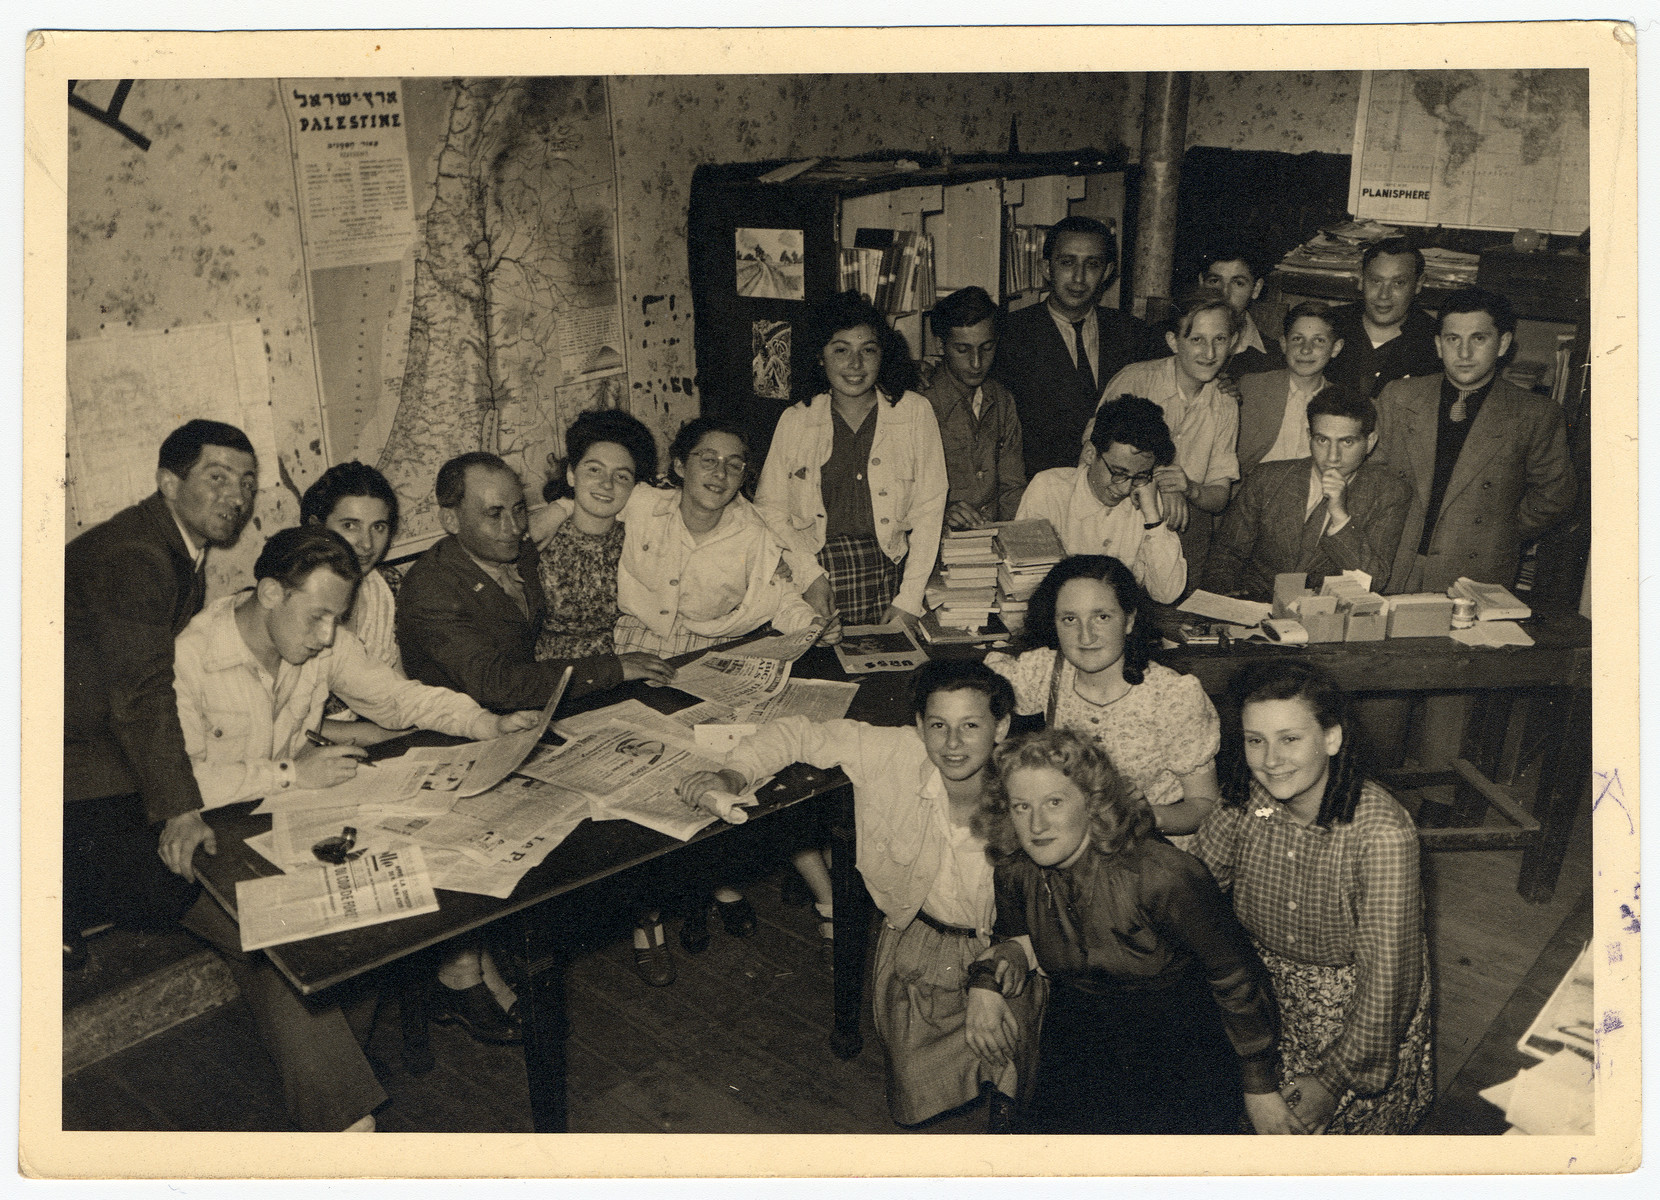 A group of Belgian Zionists gathers after the war in a room decorated with maps of Israel and filled with newspapers and books.